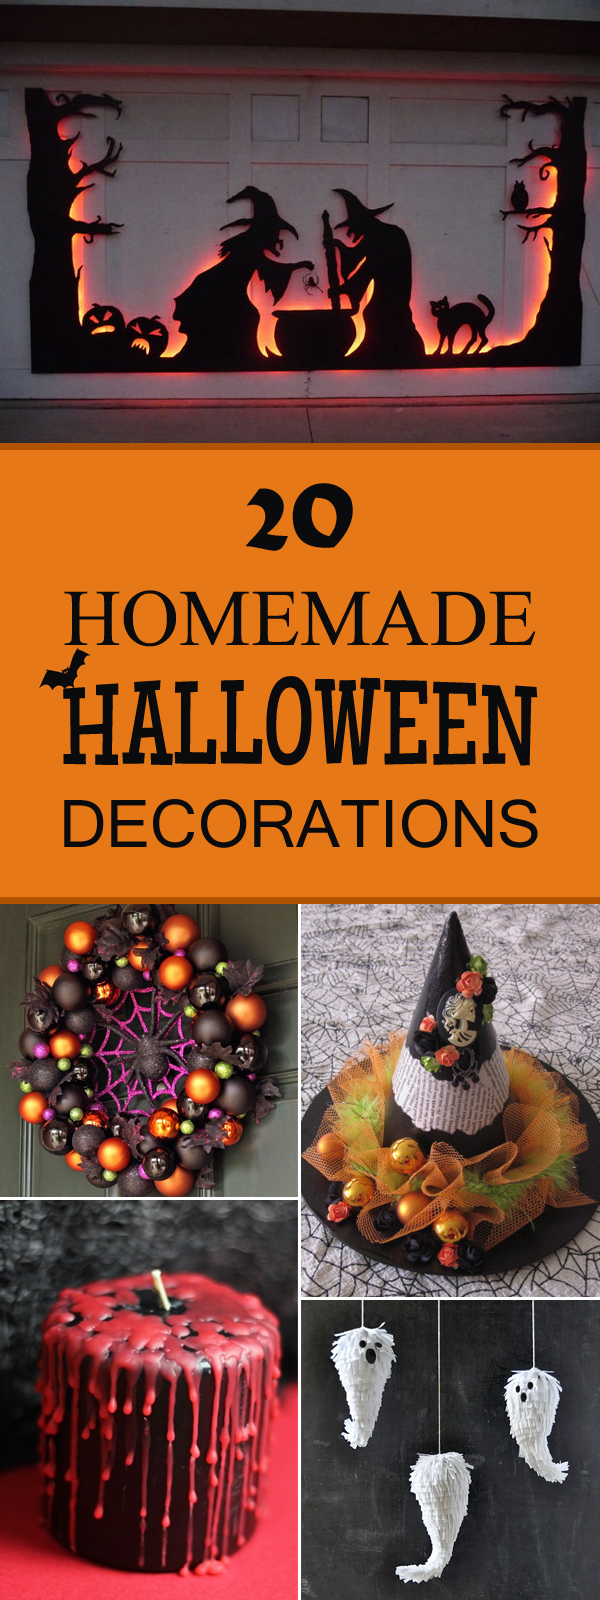 20 super cool homemade halloween decorations